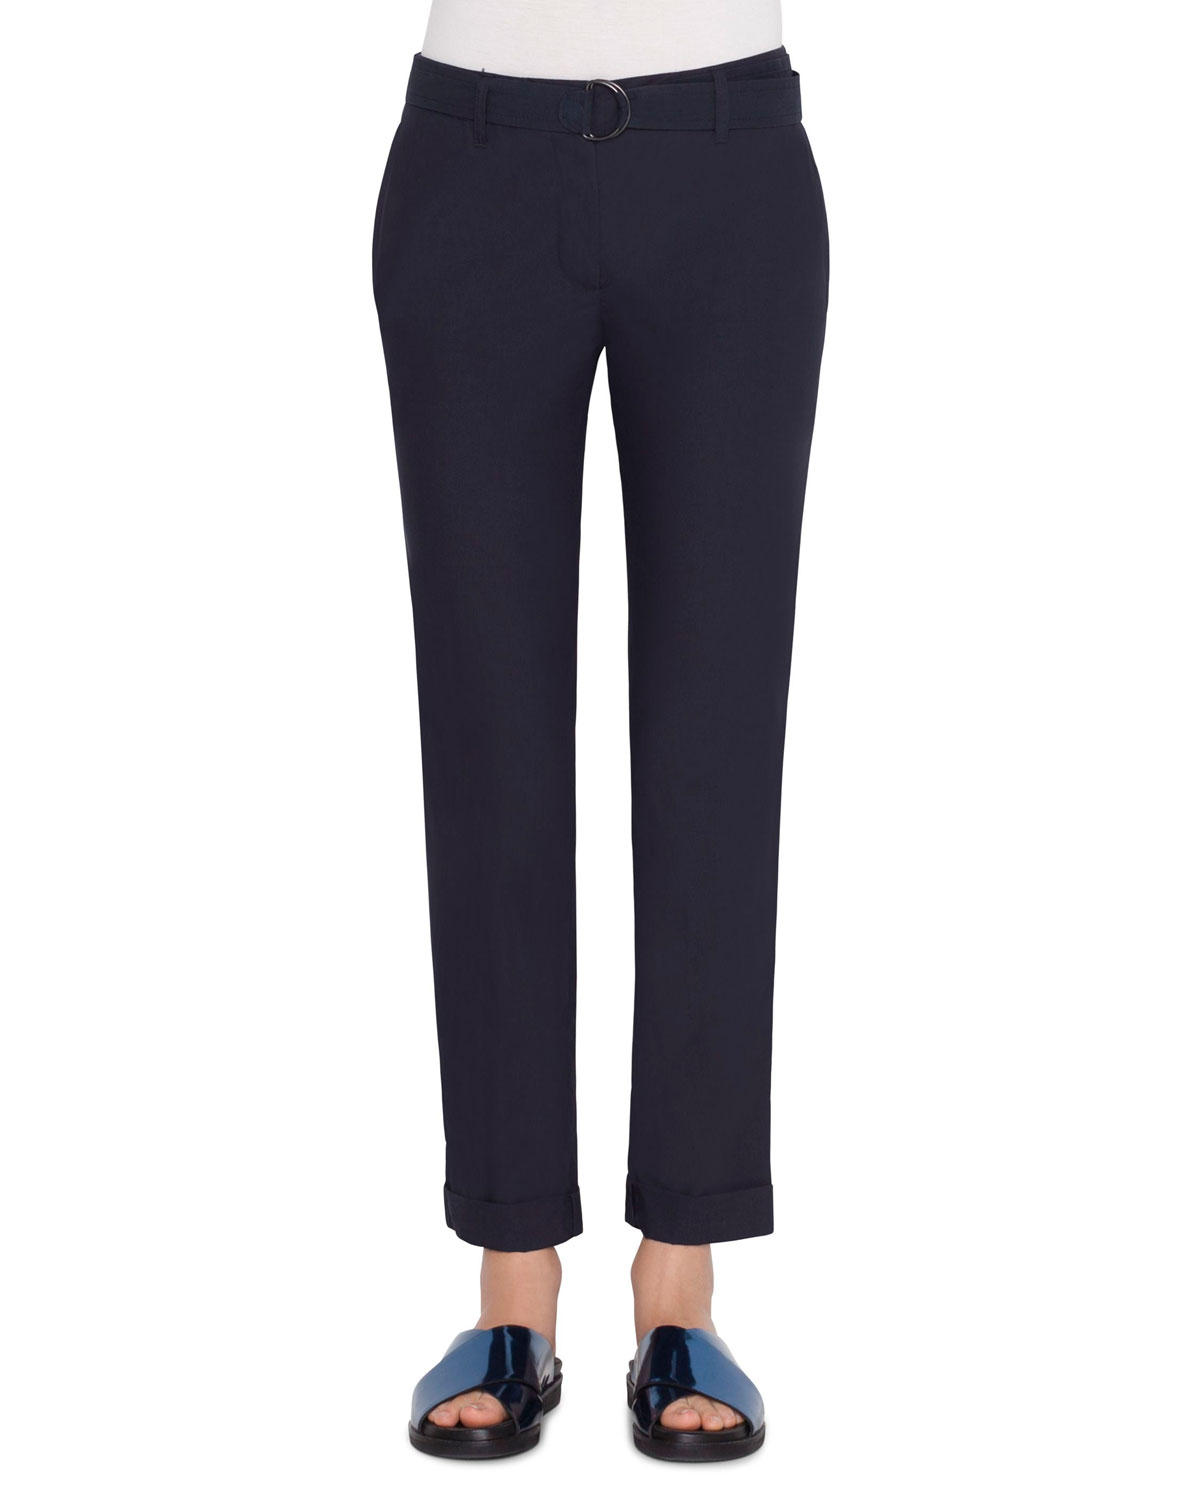 Fallon Chino Style Pants in Navy